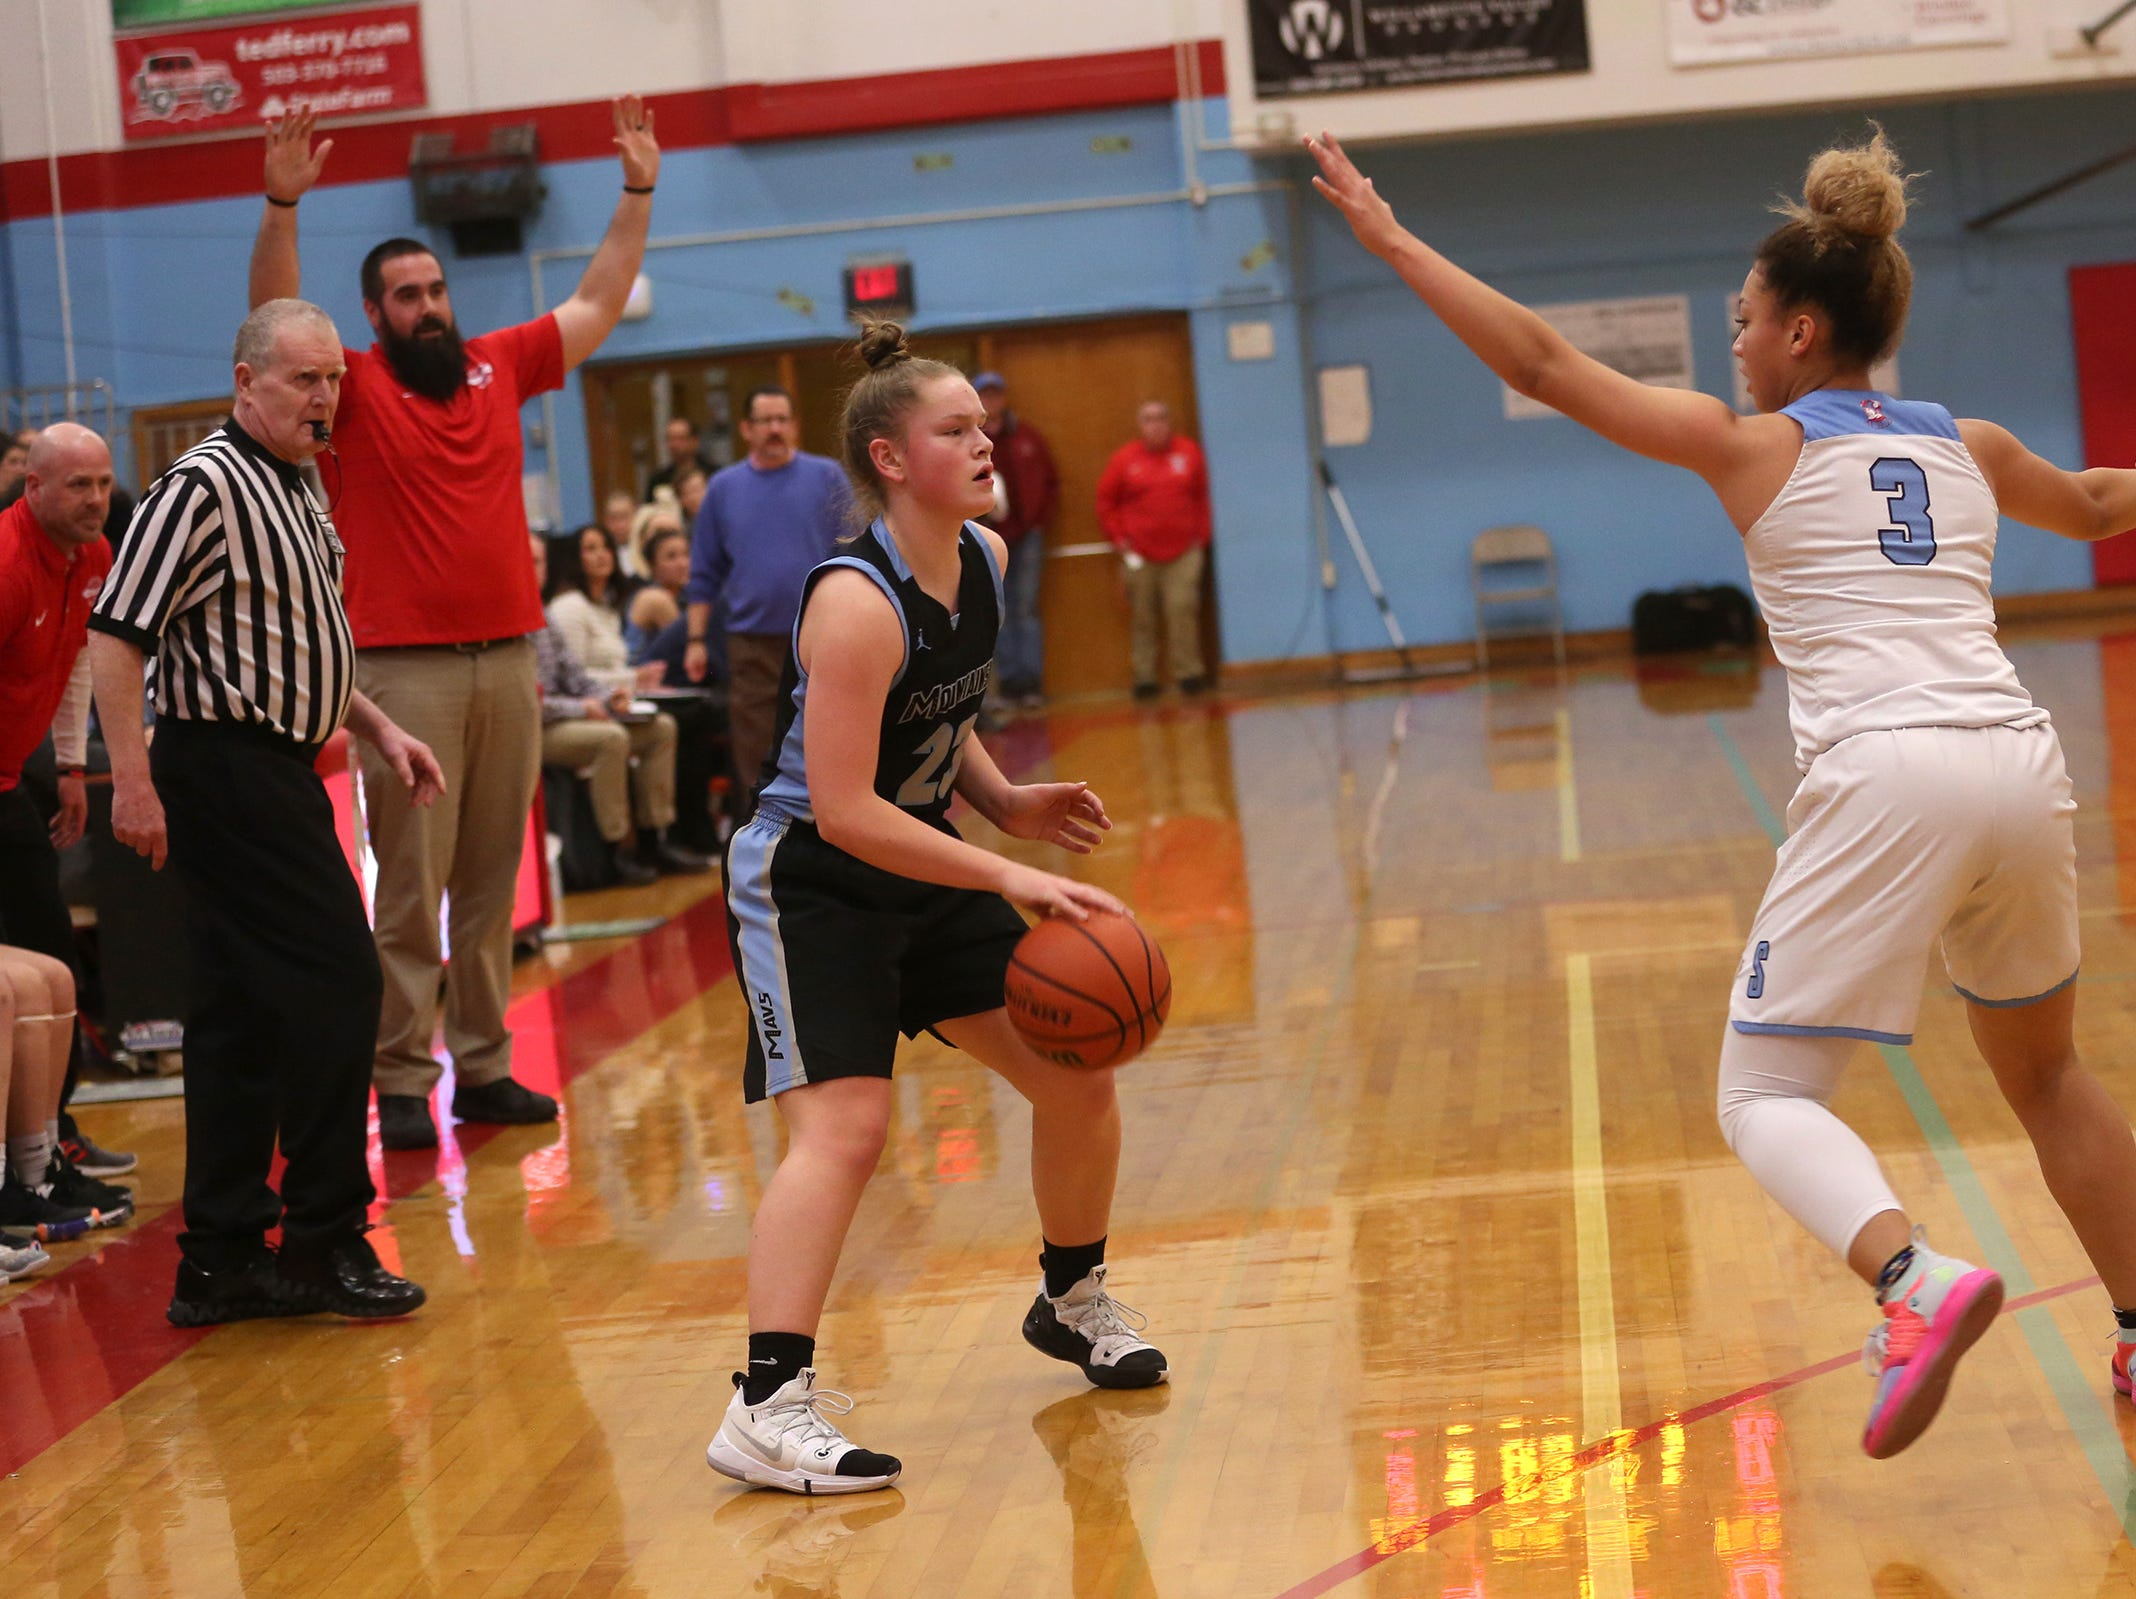 South Salem's Maylah Bolden (3) attempts to block Mountainside's Carly Stone (23) during the South Salem vs. Mountainside girls basketball OSAA playoff game in Salem on Thursday, Feb. 28, 2019.